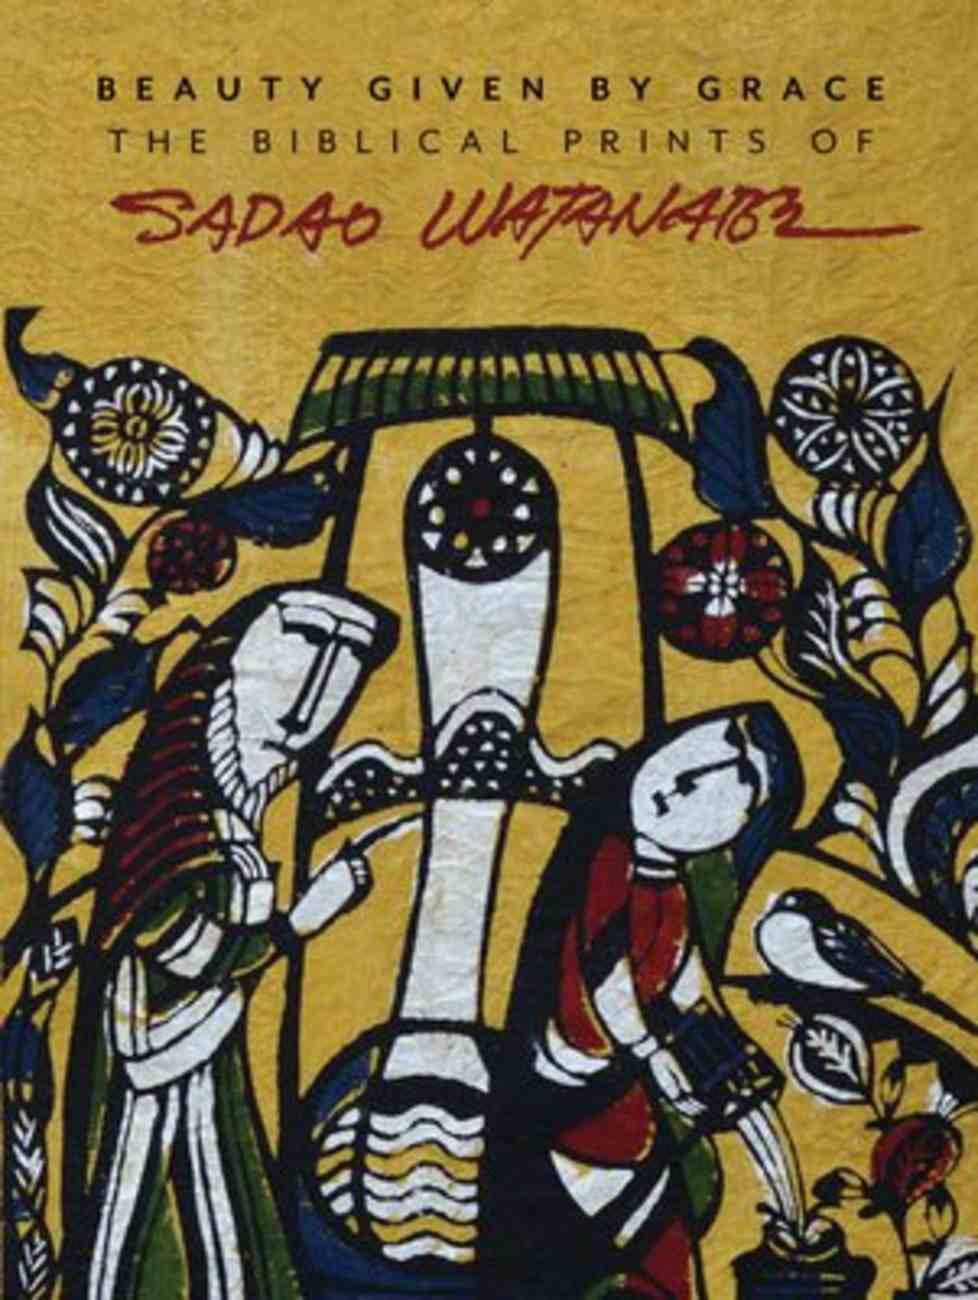 Beauty Given By Grace: The Biblical Prints of Sadao Watanabe Paperback